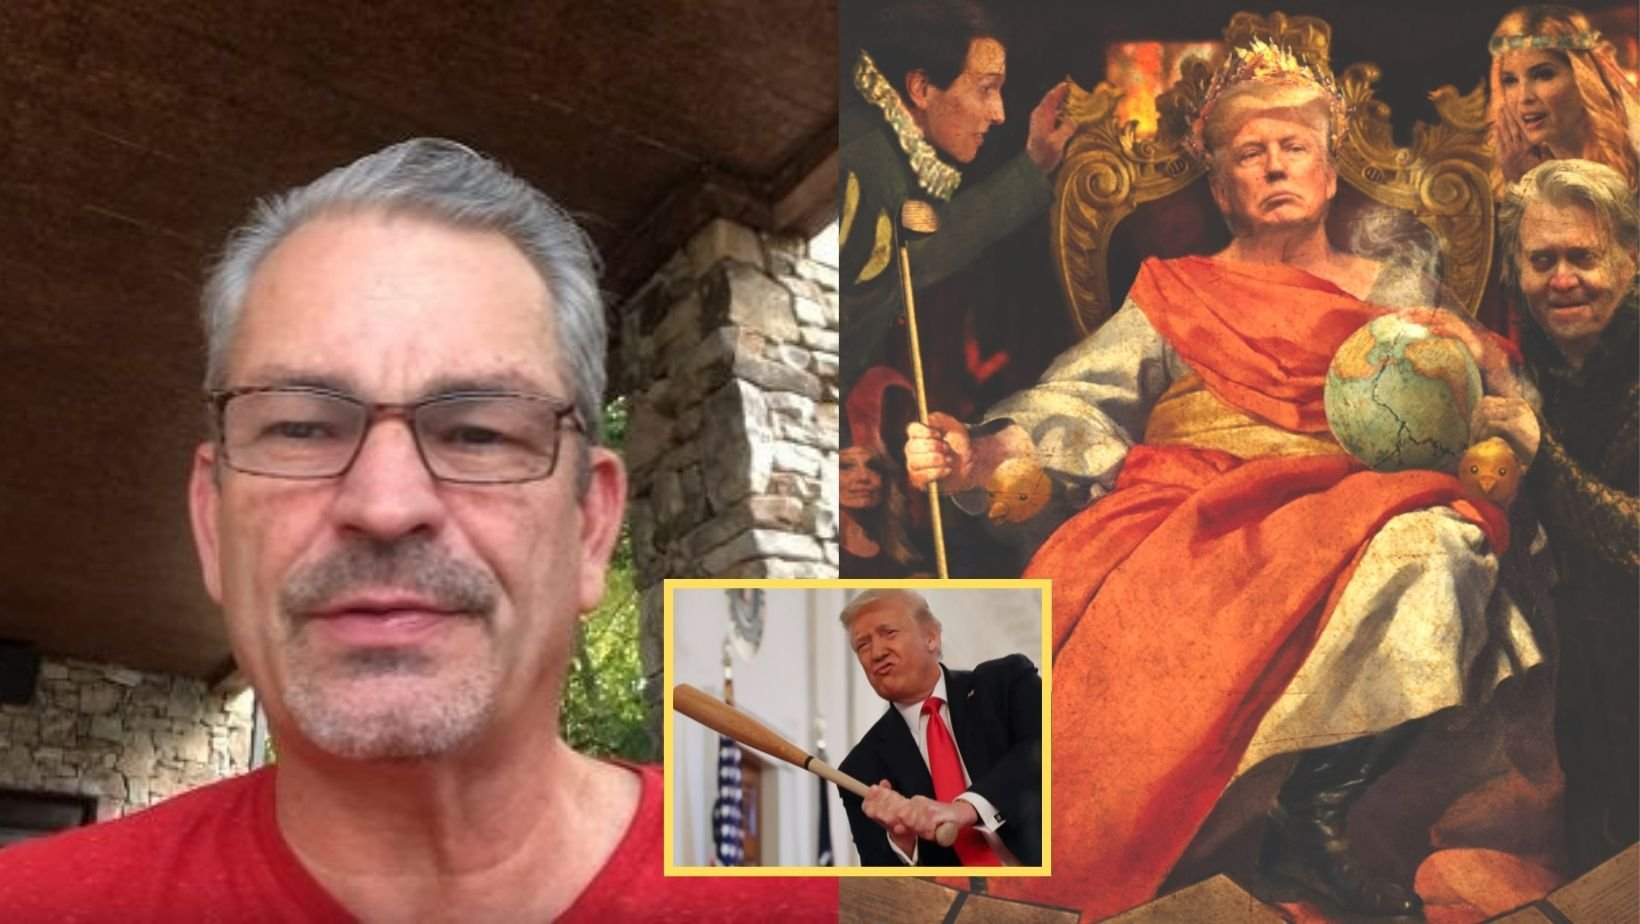 1 40.jpg?resize=1200,630 - Pastor Claims Trump Is The REAL President After He Saw The Ex-POTUS In His Vision Holding A Golden Scepter